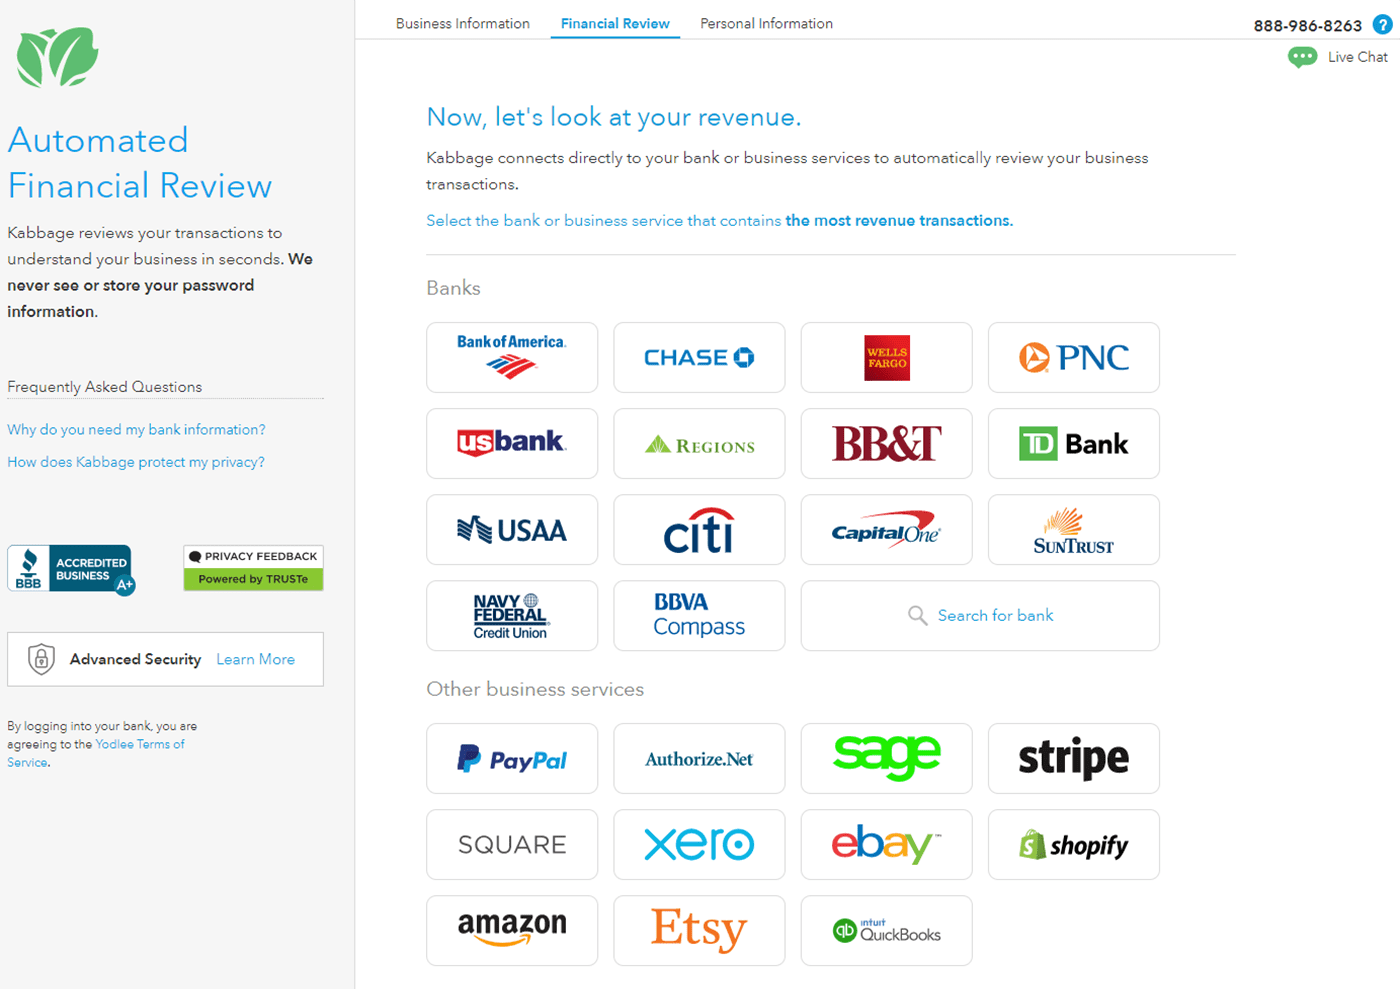 Screenshot showing the automated financial review search page at Kabbage